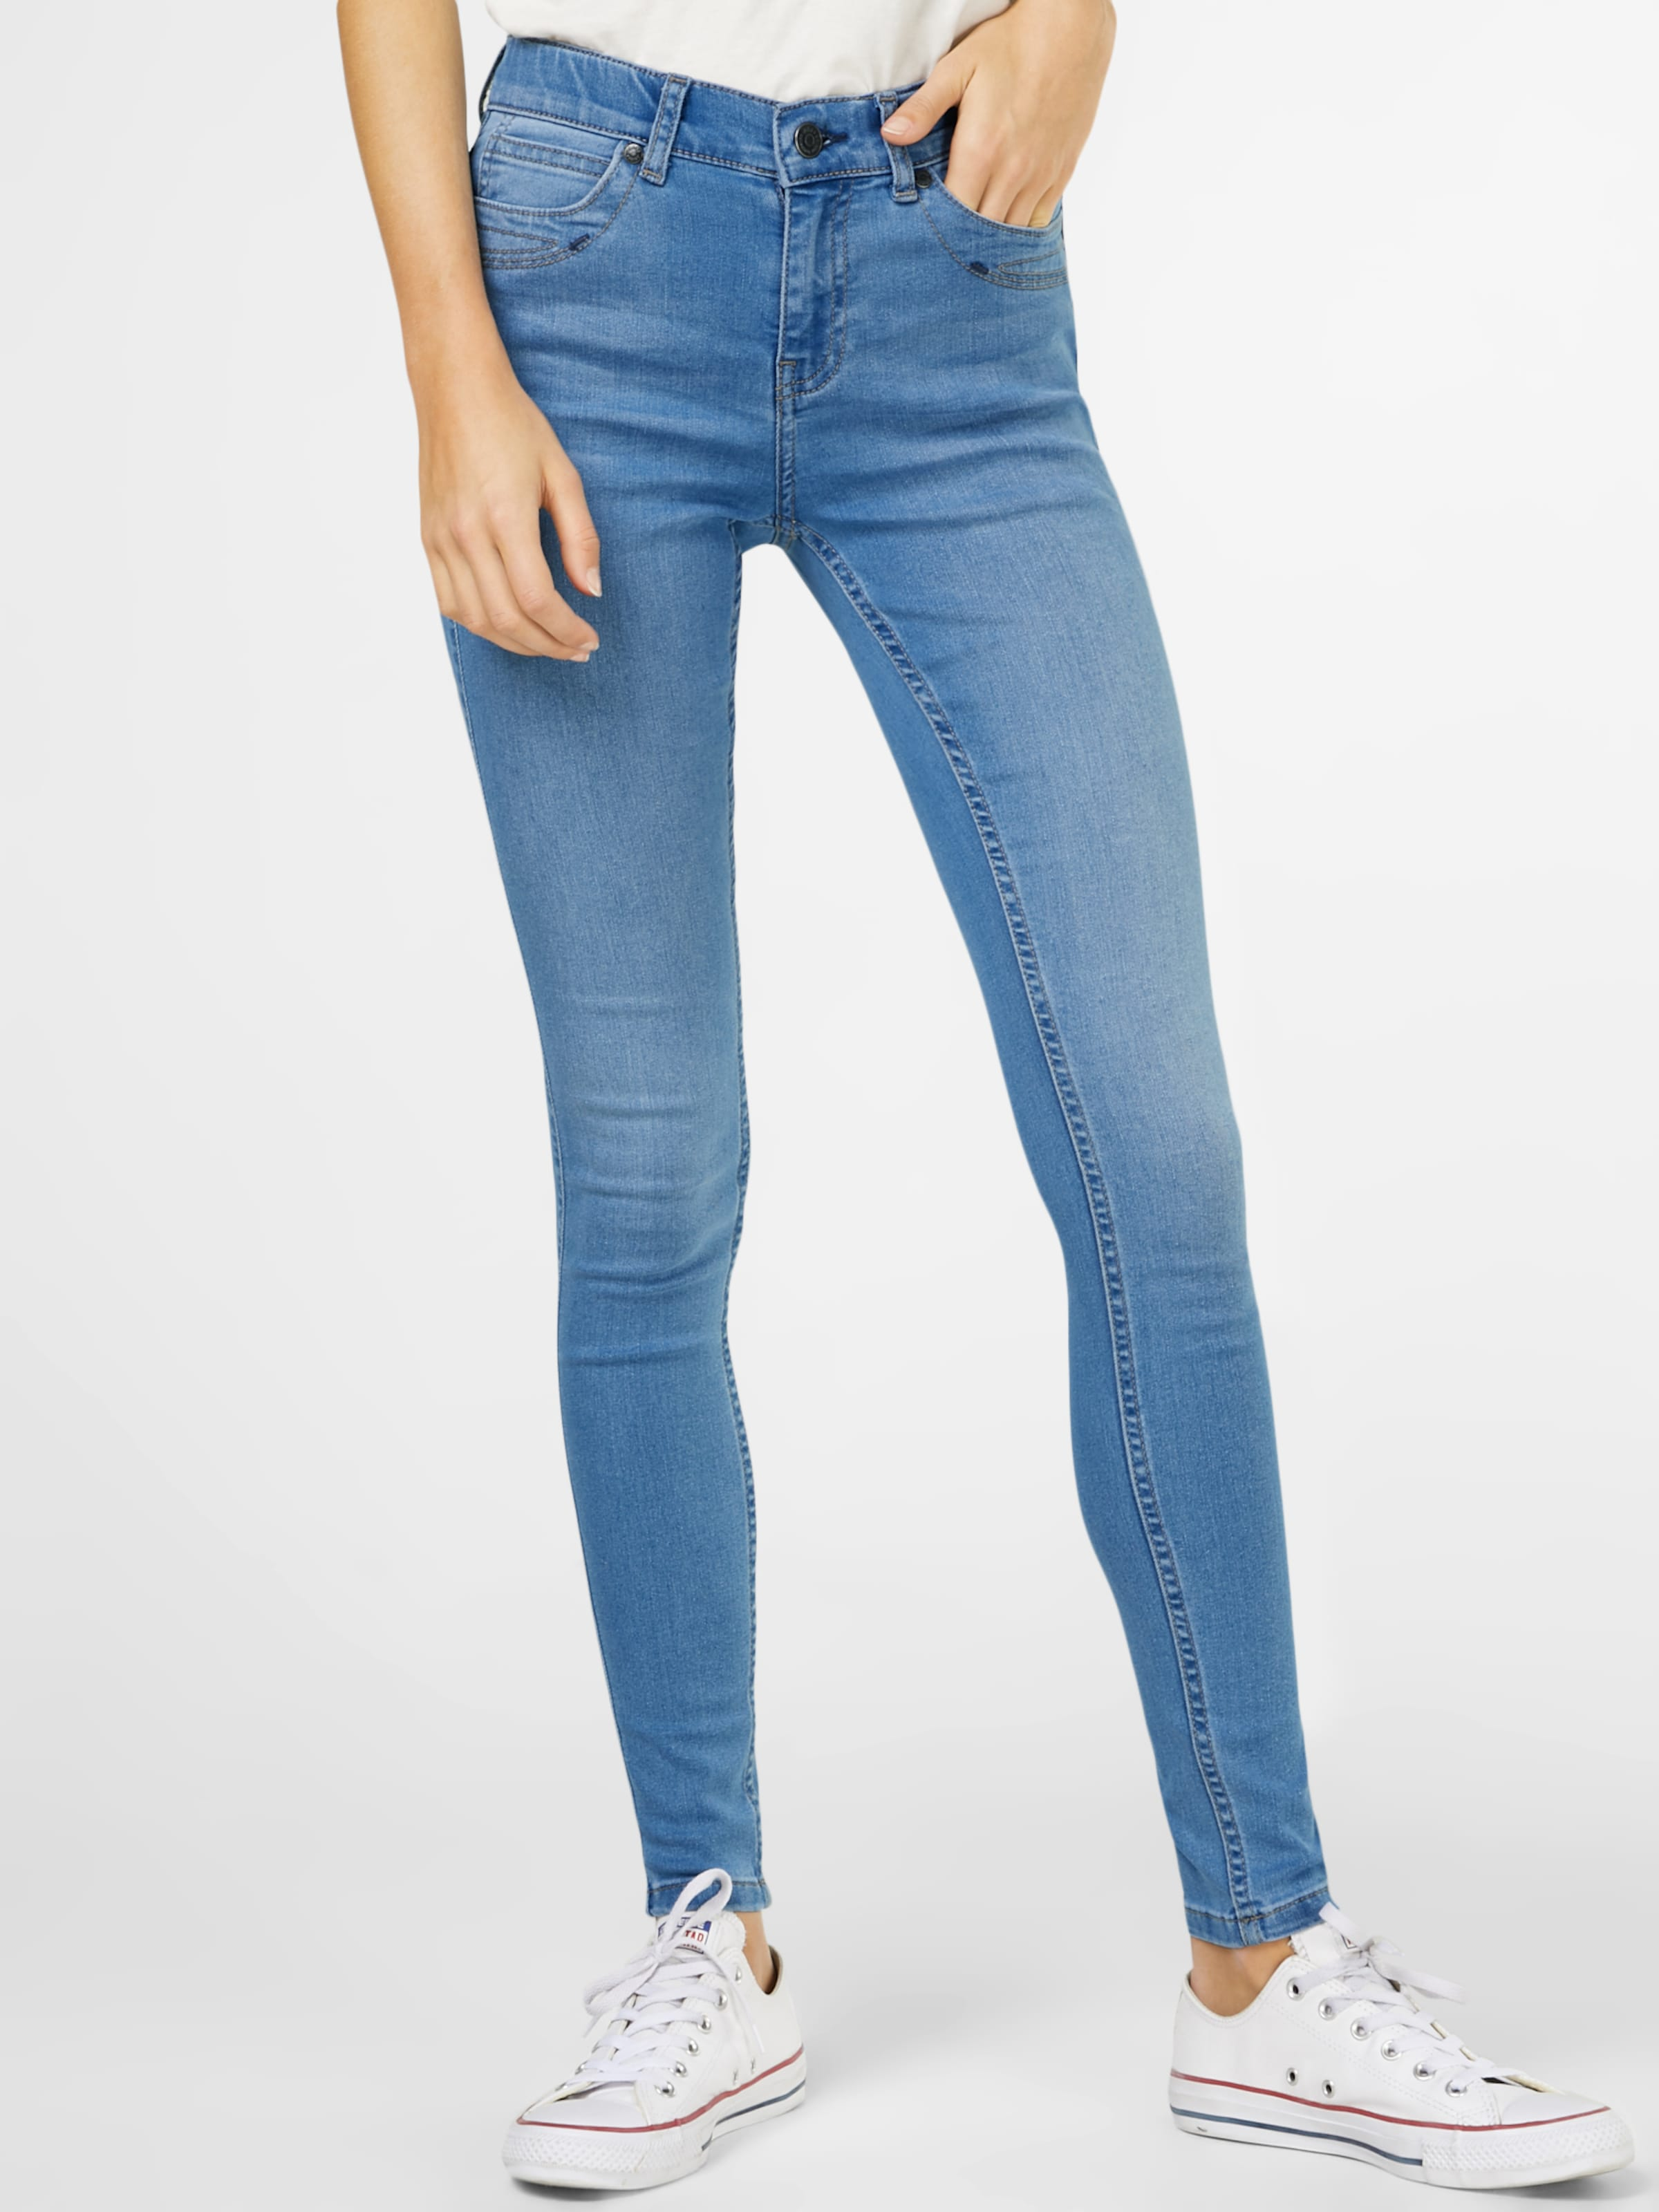 'sophie' Blauw In Jeggings Object Denim KJF1cTl3